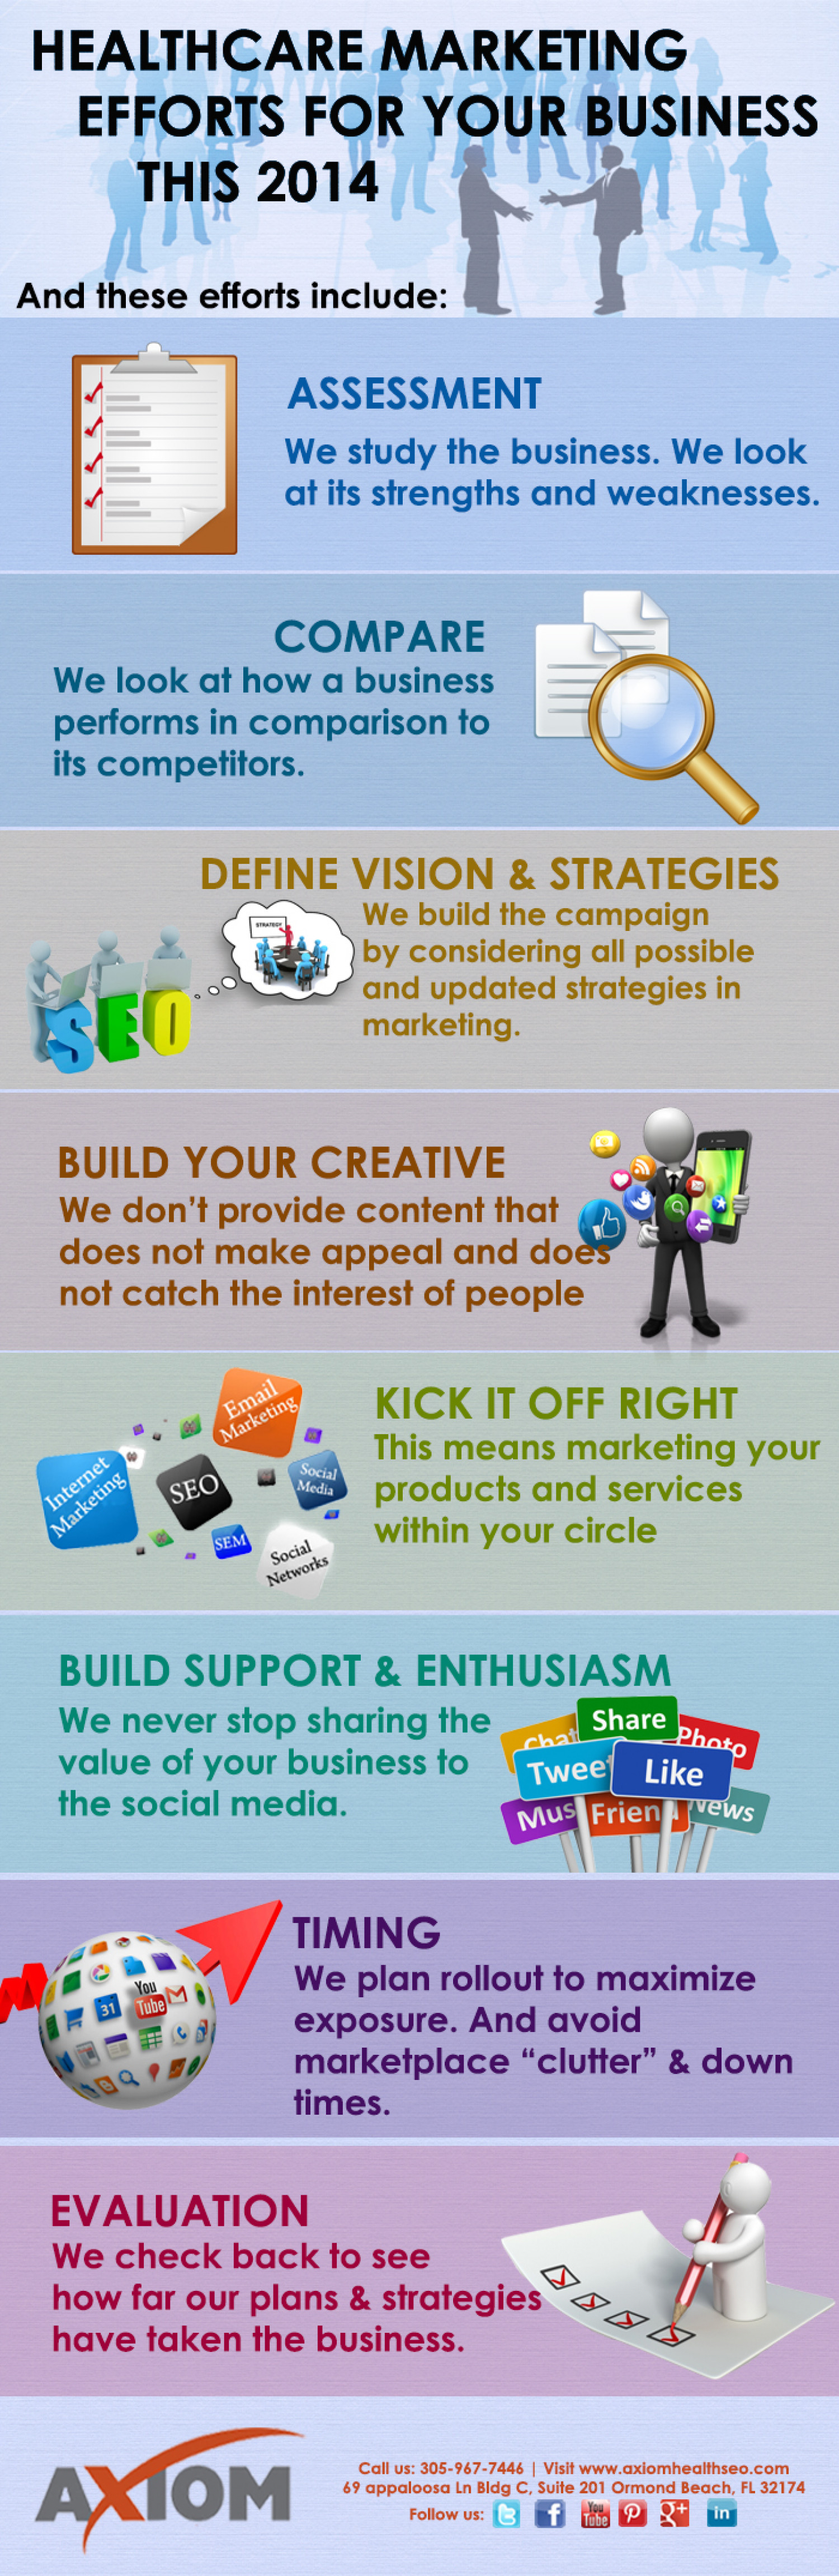 Health Care Marketing Efforts for Your Business this 2014 Infographic